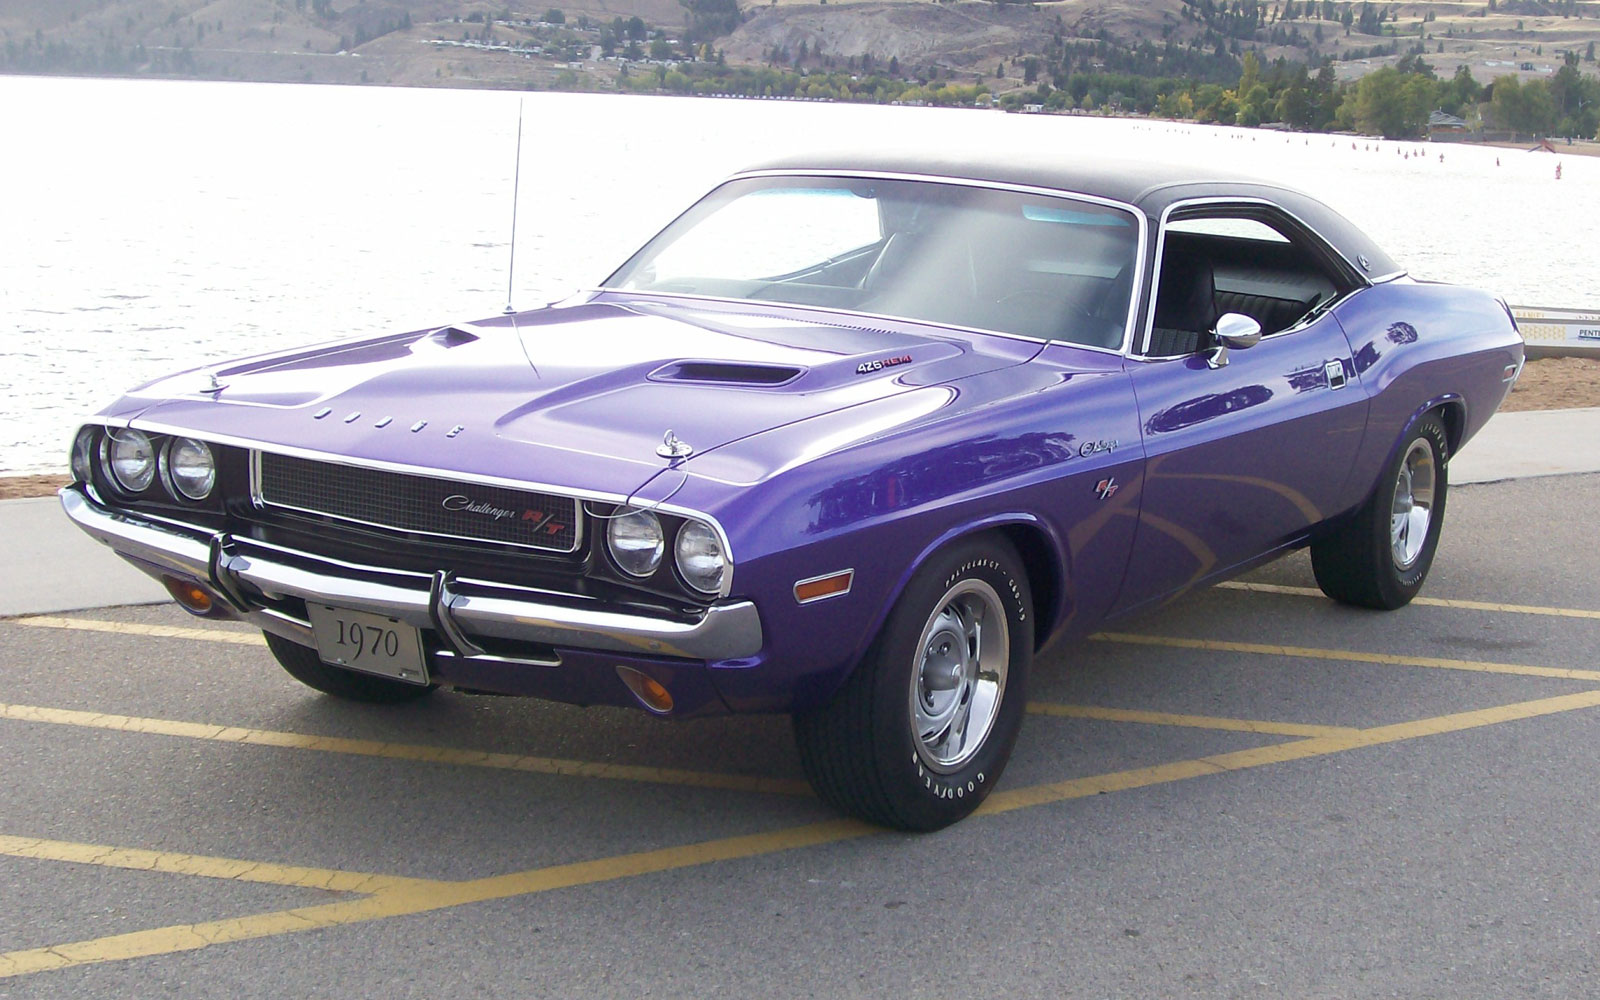 1970 dodge hemi challenger rt se my dream car. Black Bedroom Furniture Sets. Home Design Ideas